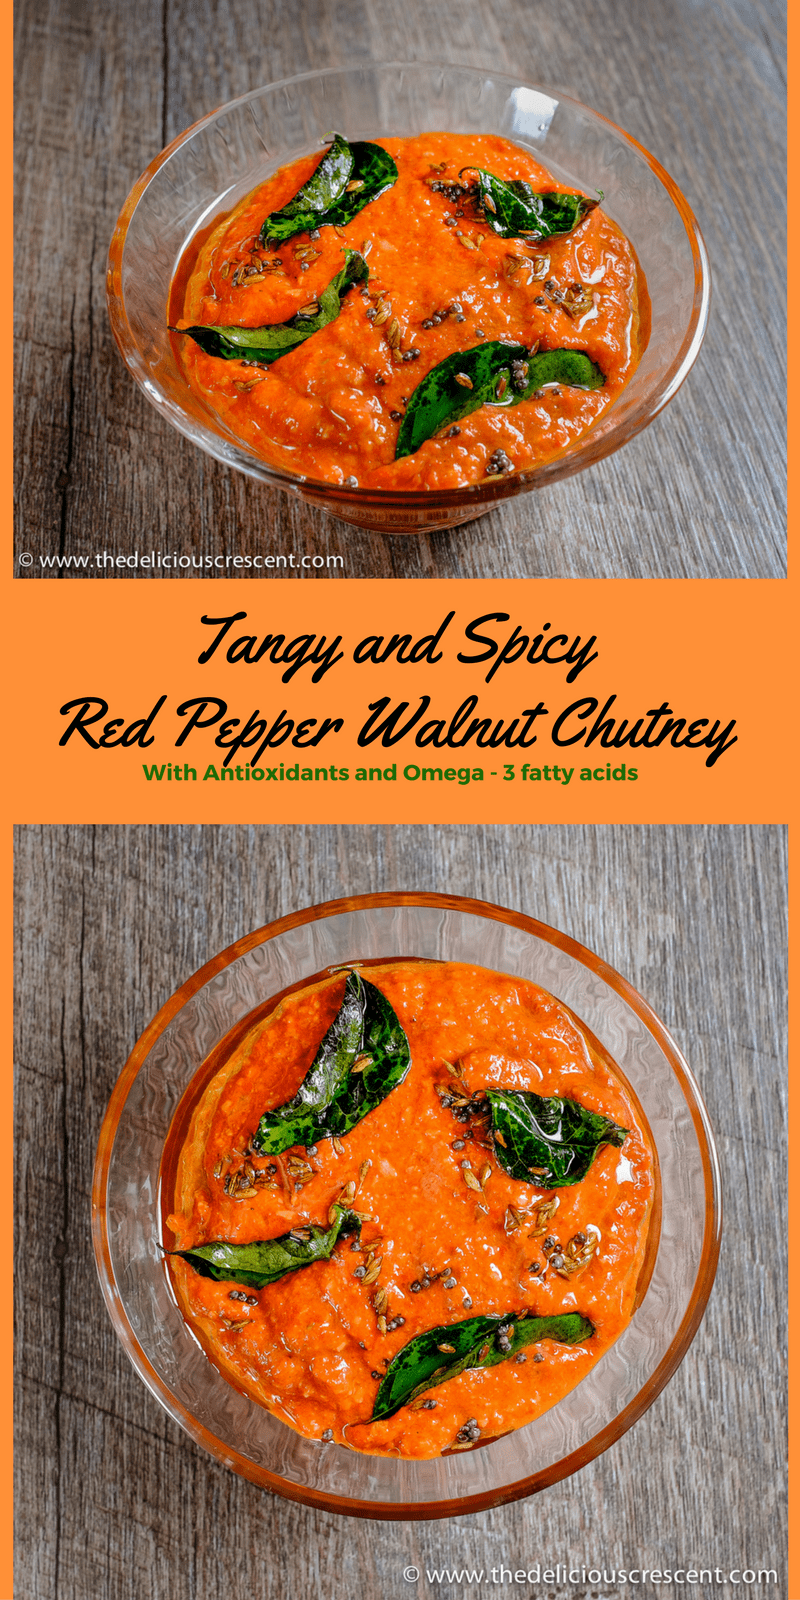 Tangy and Spicy Red Pepper Walnut Chutney – dip into this delicious smoky flavored chutney packed with antioxidants, omega-3 fats and phytochemicals. The sweet smoky roasted red bell peppers, tart lemon juice, earthy creaminess of walnuts and aromatic spices come together to give you this delectable chutney.